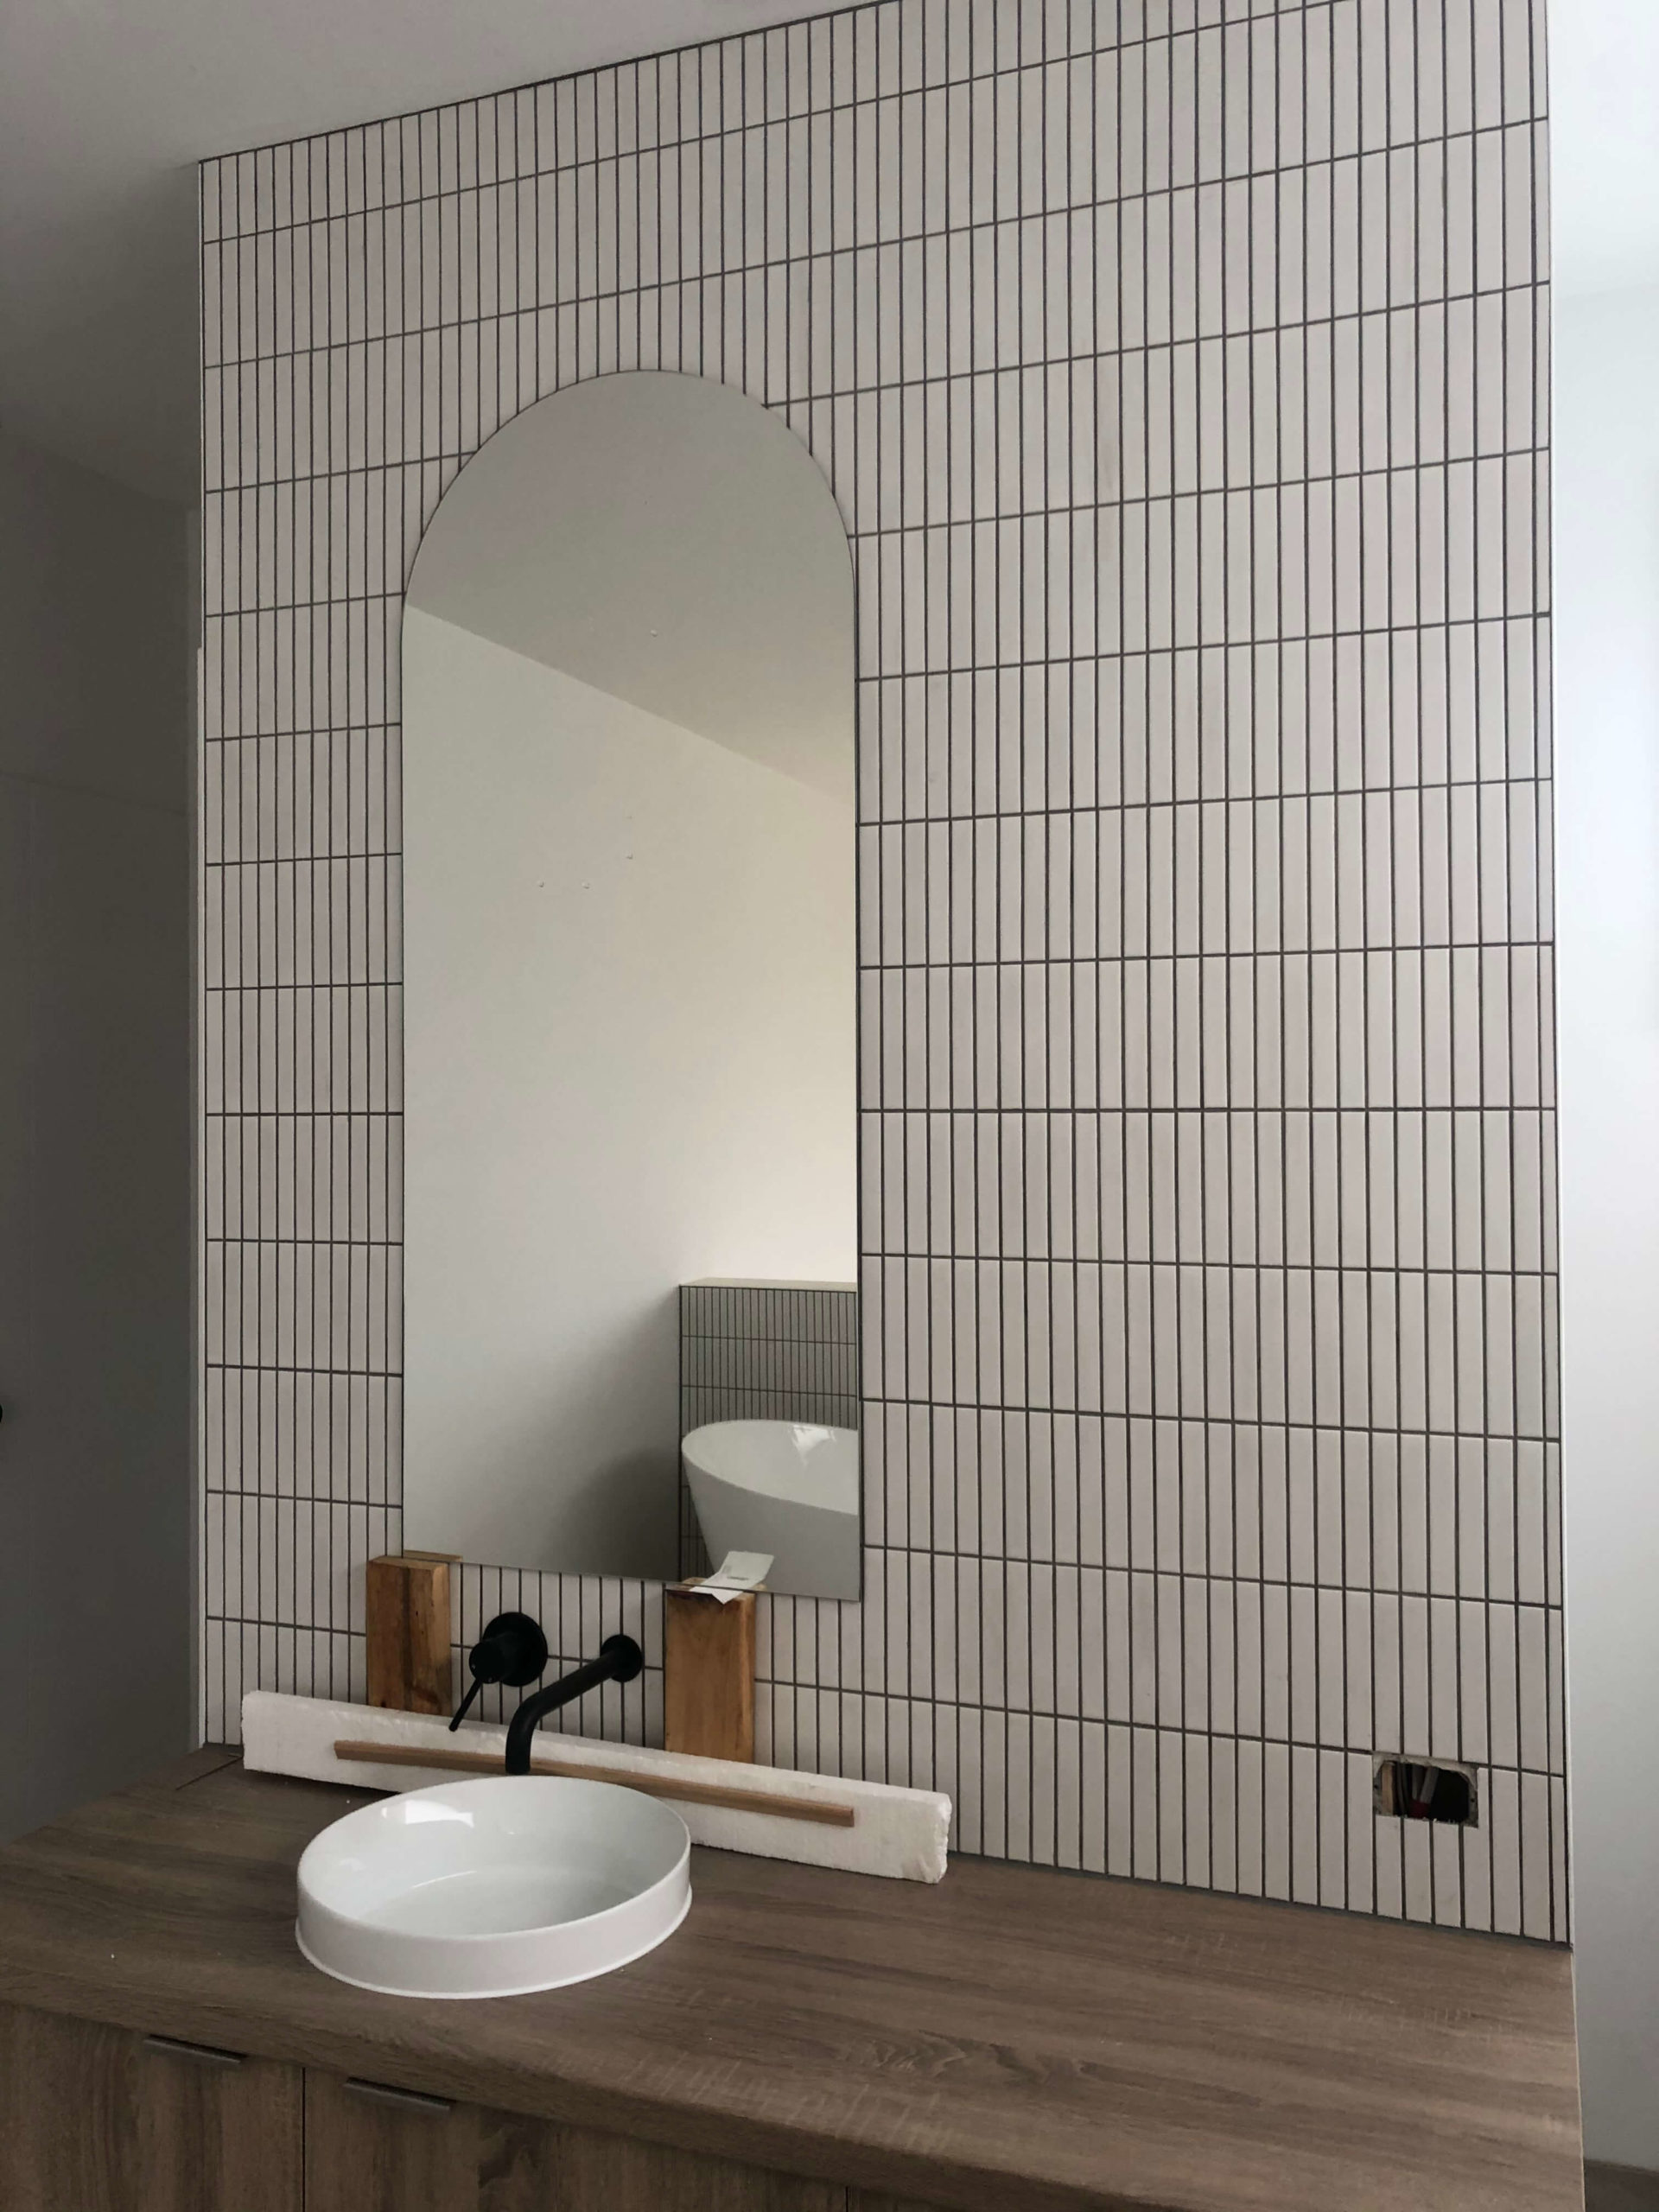 Decorative Shaped Bathroom Mirror